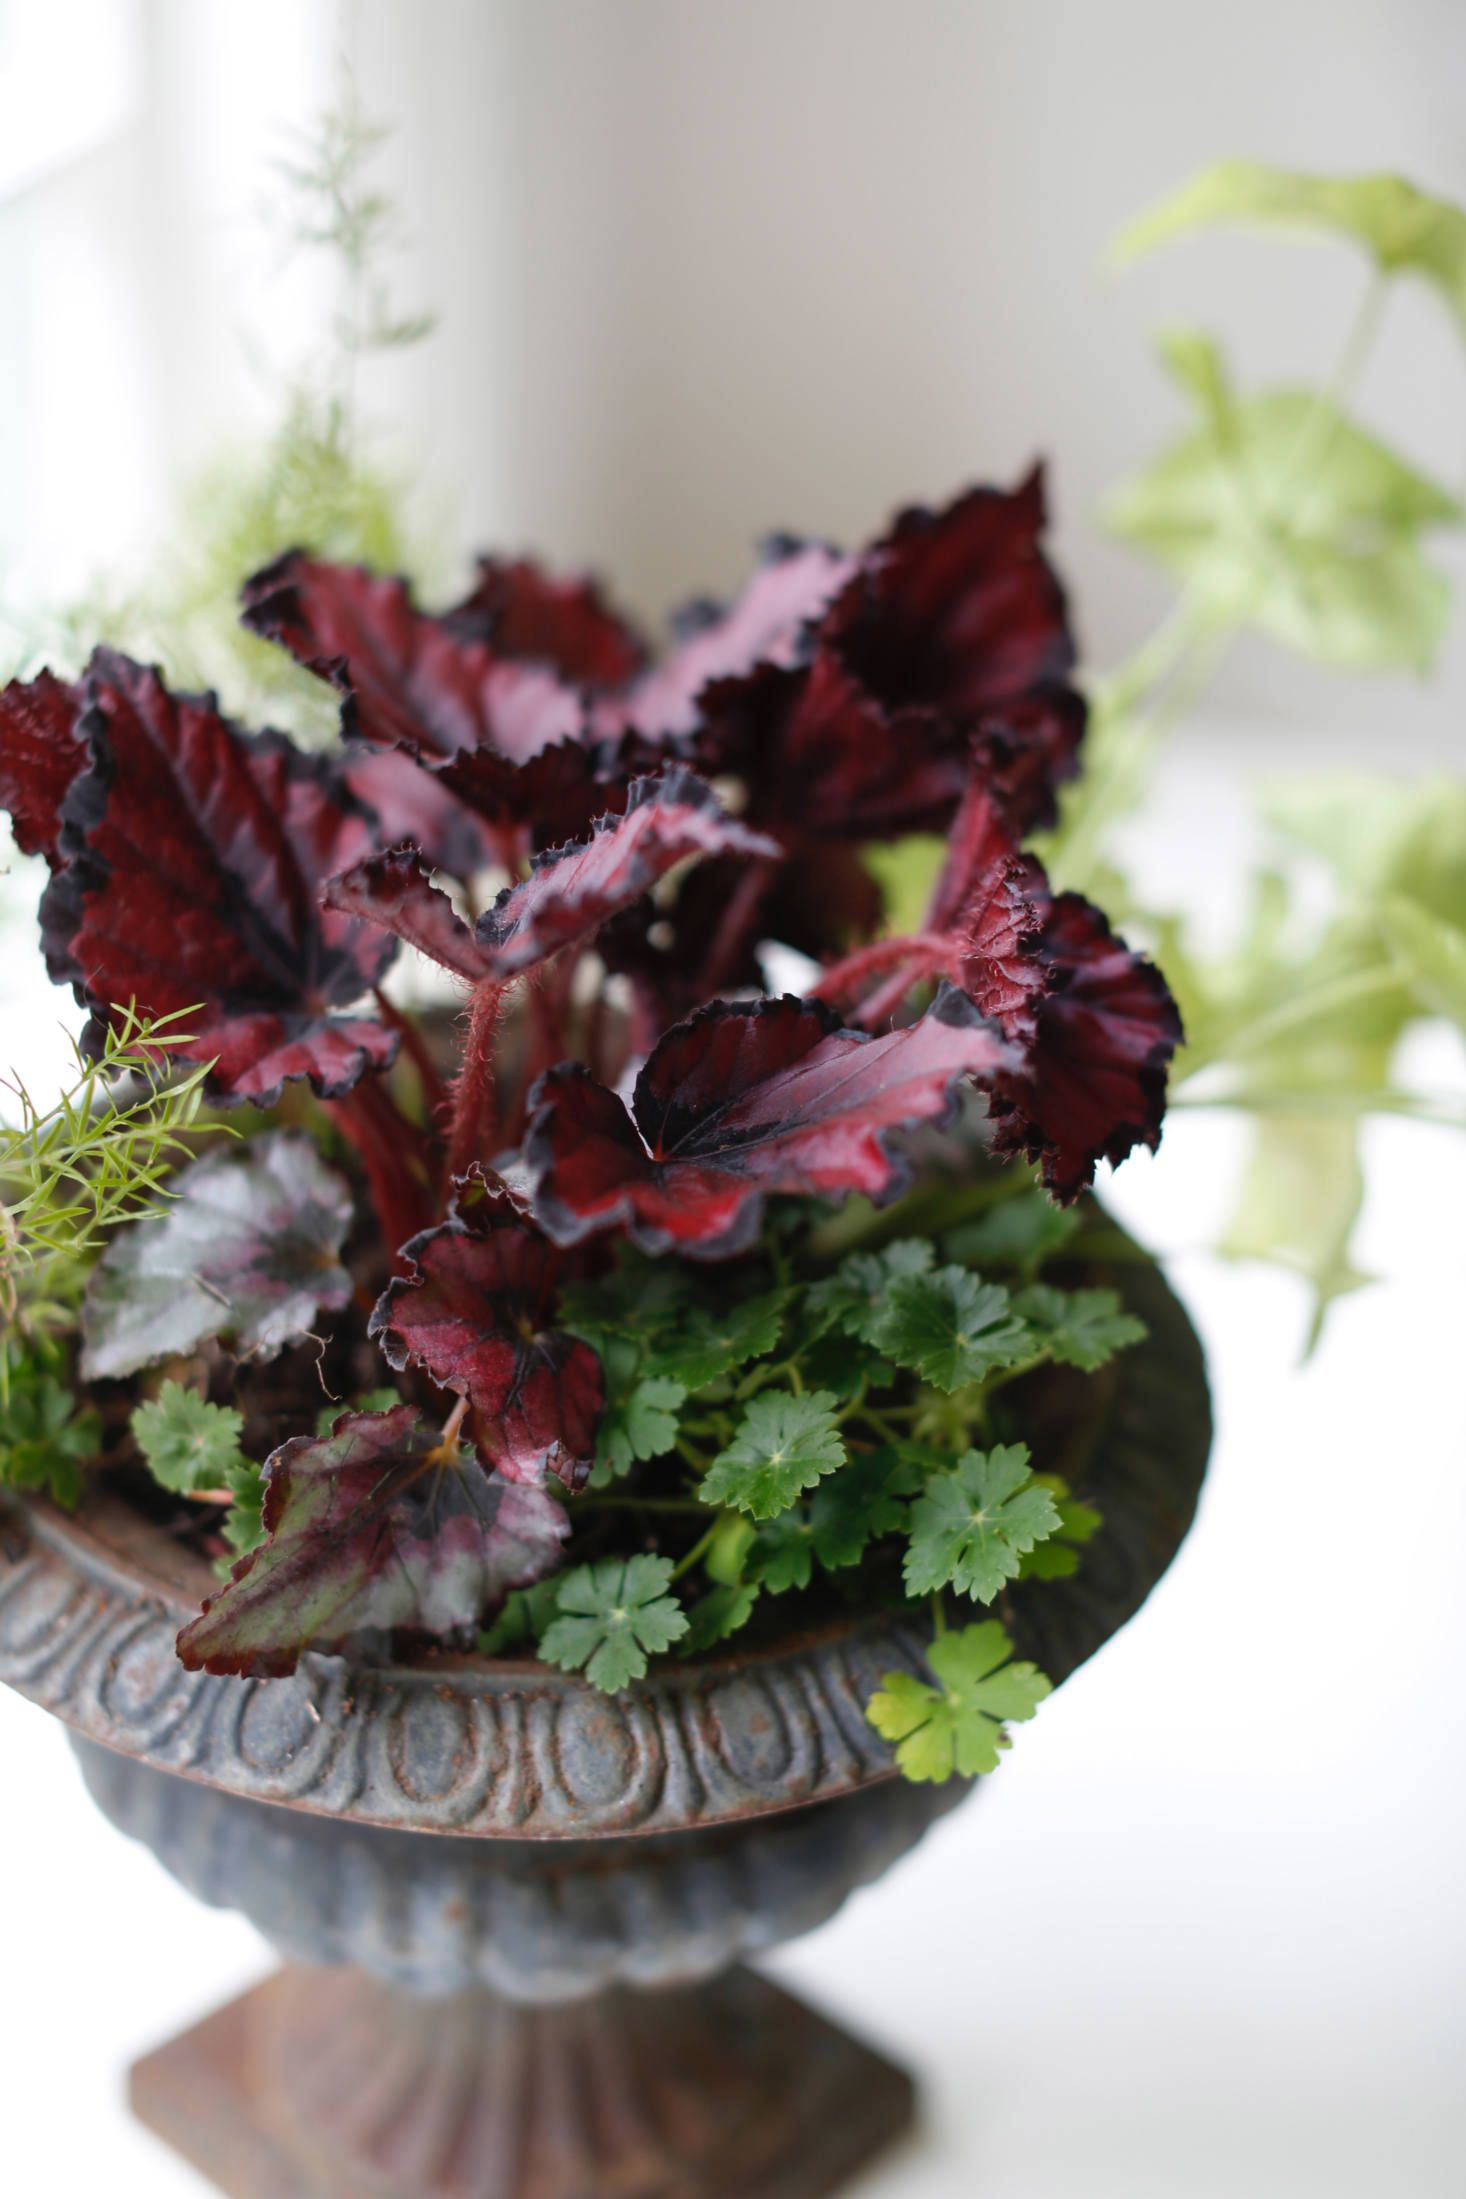 Houseplant Help 5 Tips To Keep Finicky Begonia Rex Alive Gardenista House Plants Plants Begonia